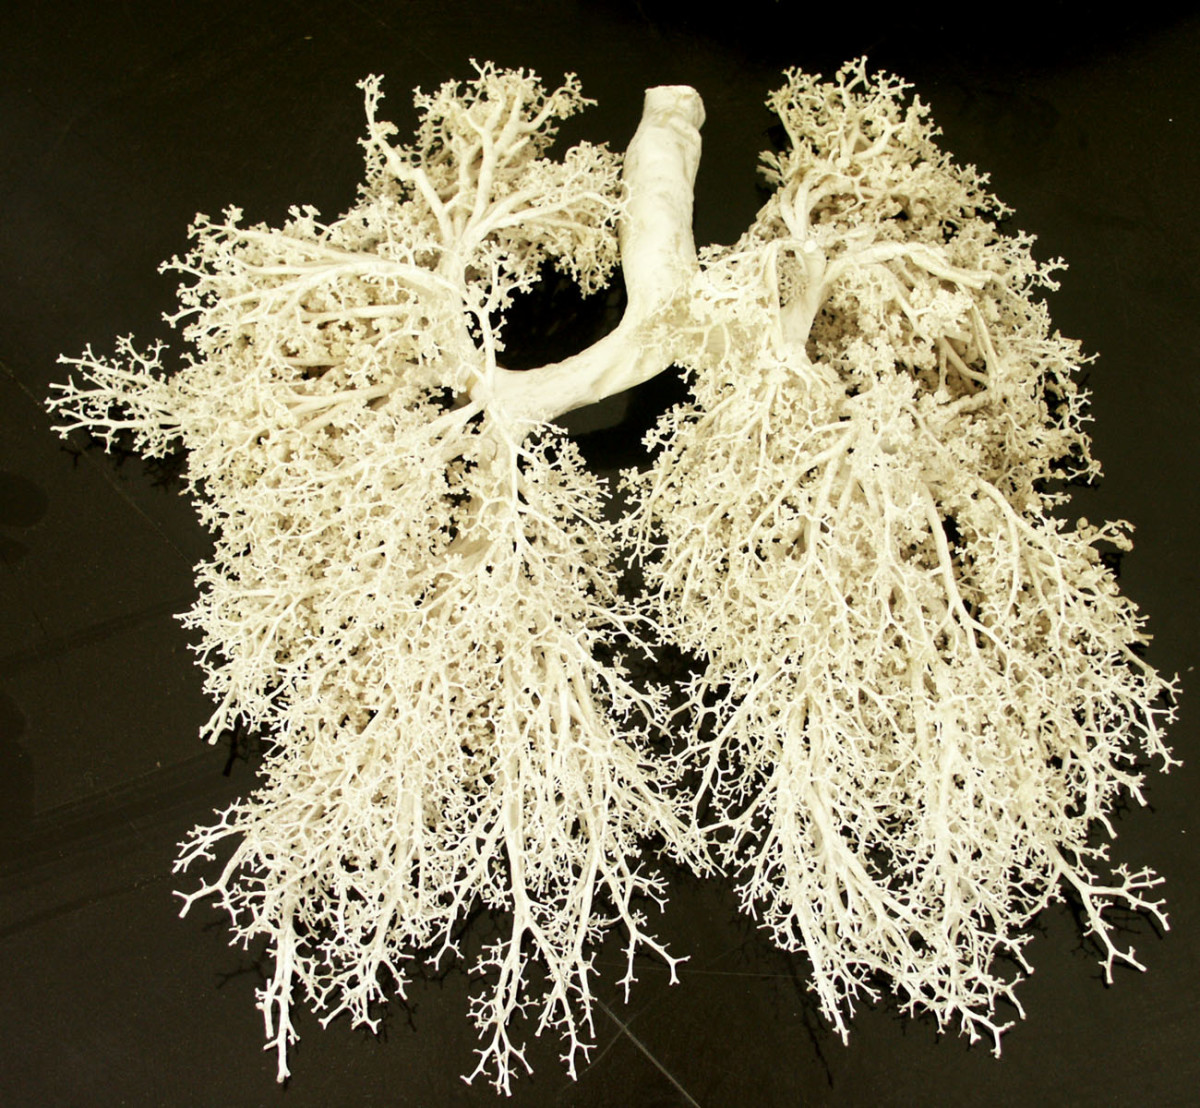 Plasticized human trachea, bronchi, and bronchioles